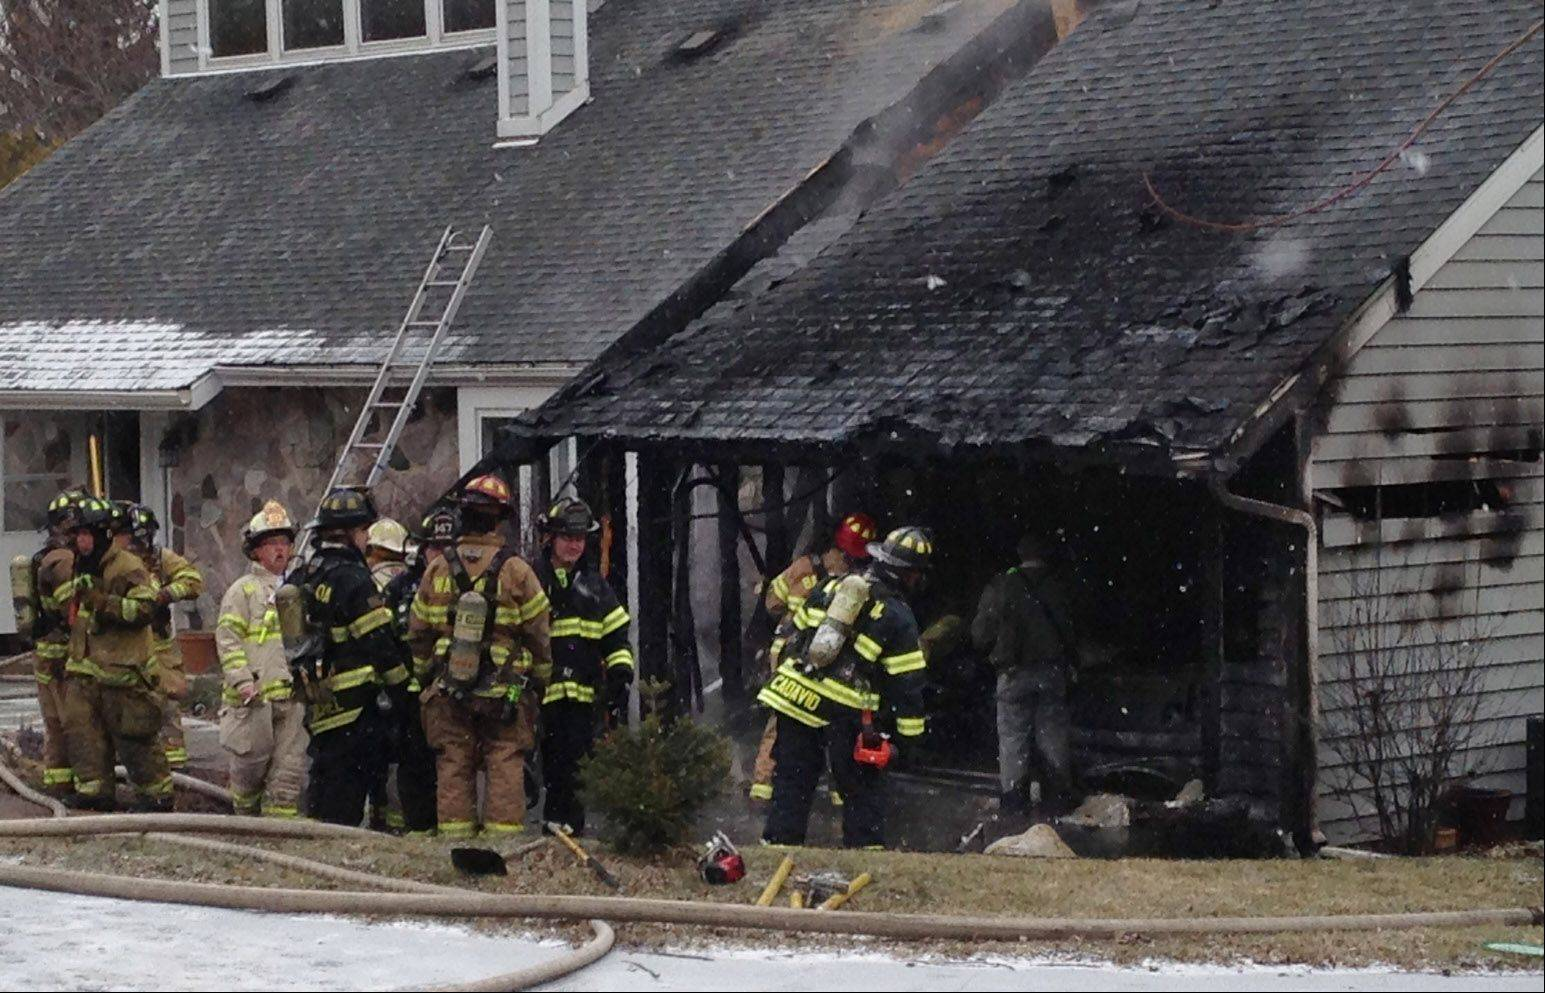 Firefighters inspect the fire damage in a garage attached to a home on the 26000 block of North Main Street in Wauconda early Wednesday afternoon.